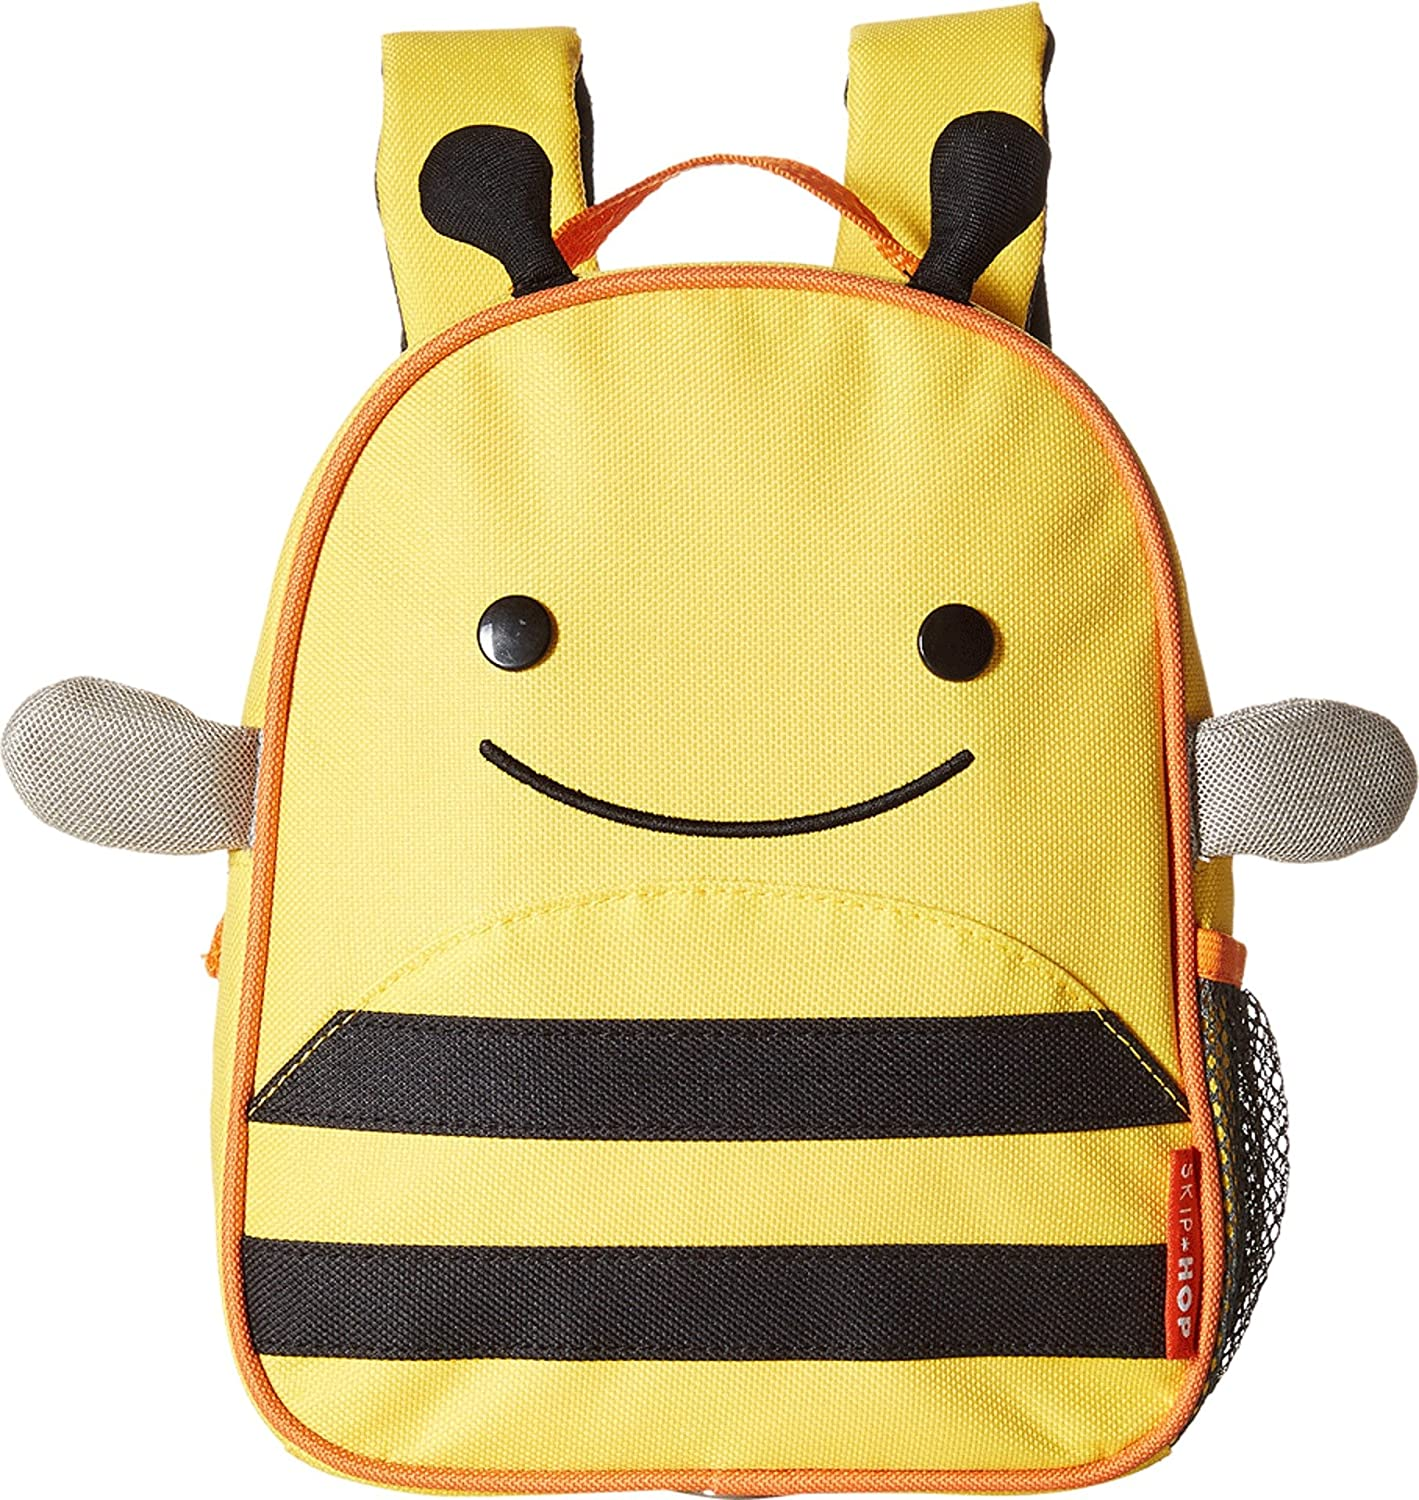 Skip Hop Zoo arnés de seguridad amarillo Yellow Bee Talla:Travel Size 212260-CNSZP